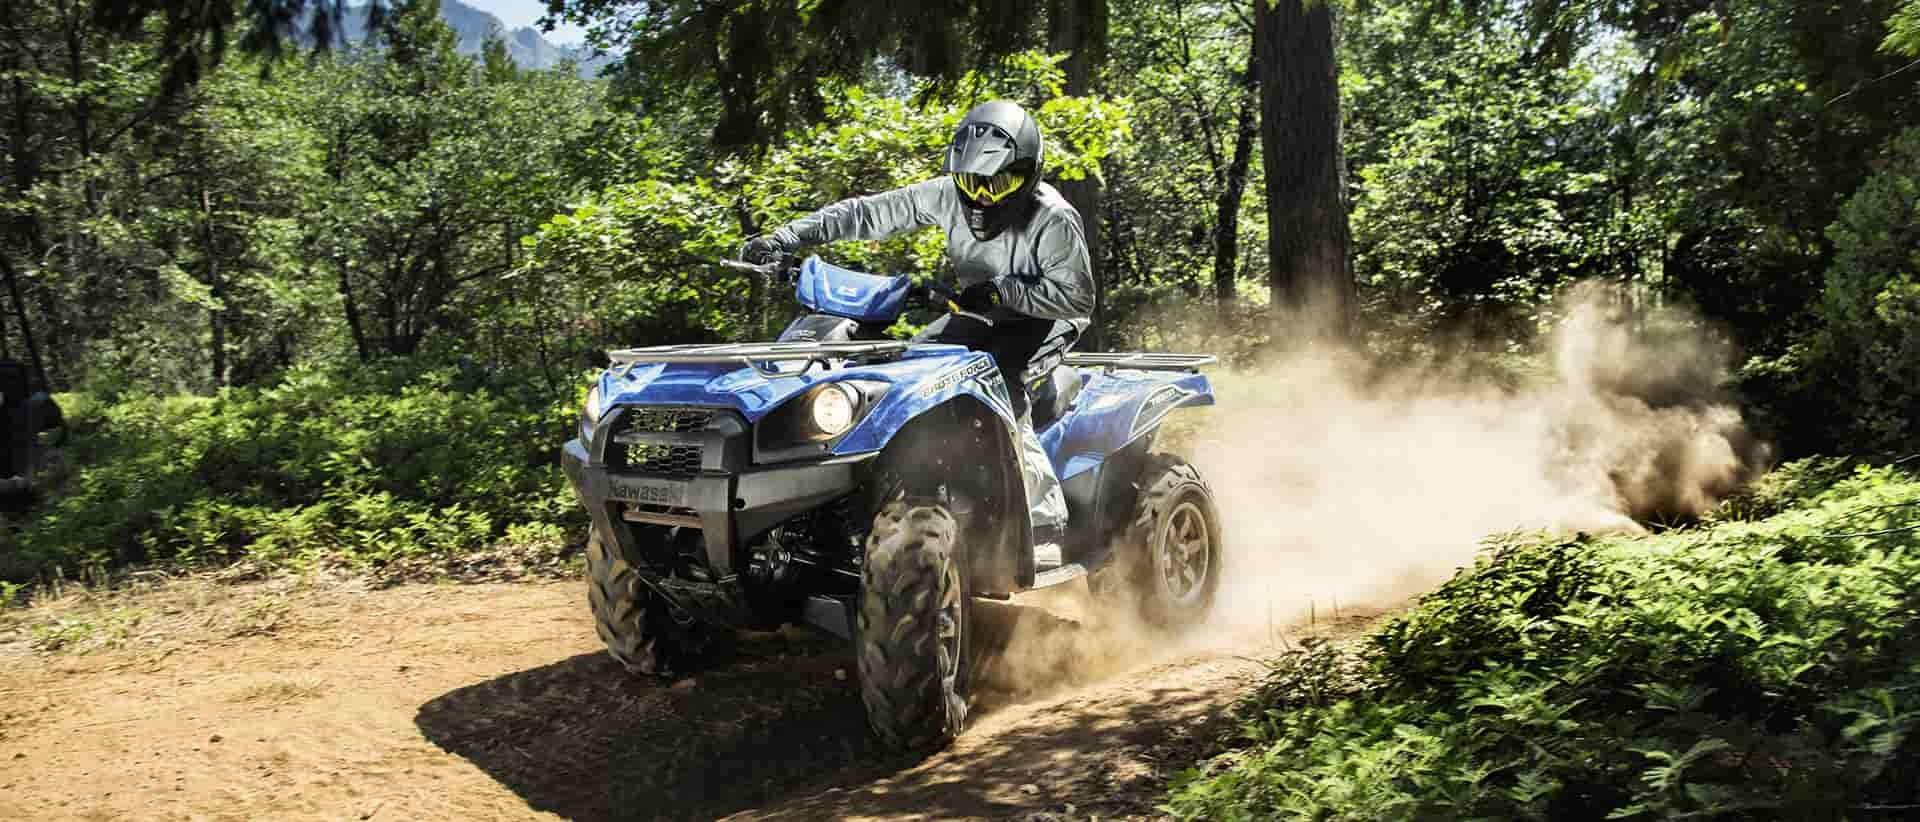 Kawasaki ATVs | Available at Ohio Cycleworx